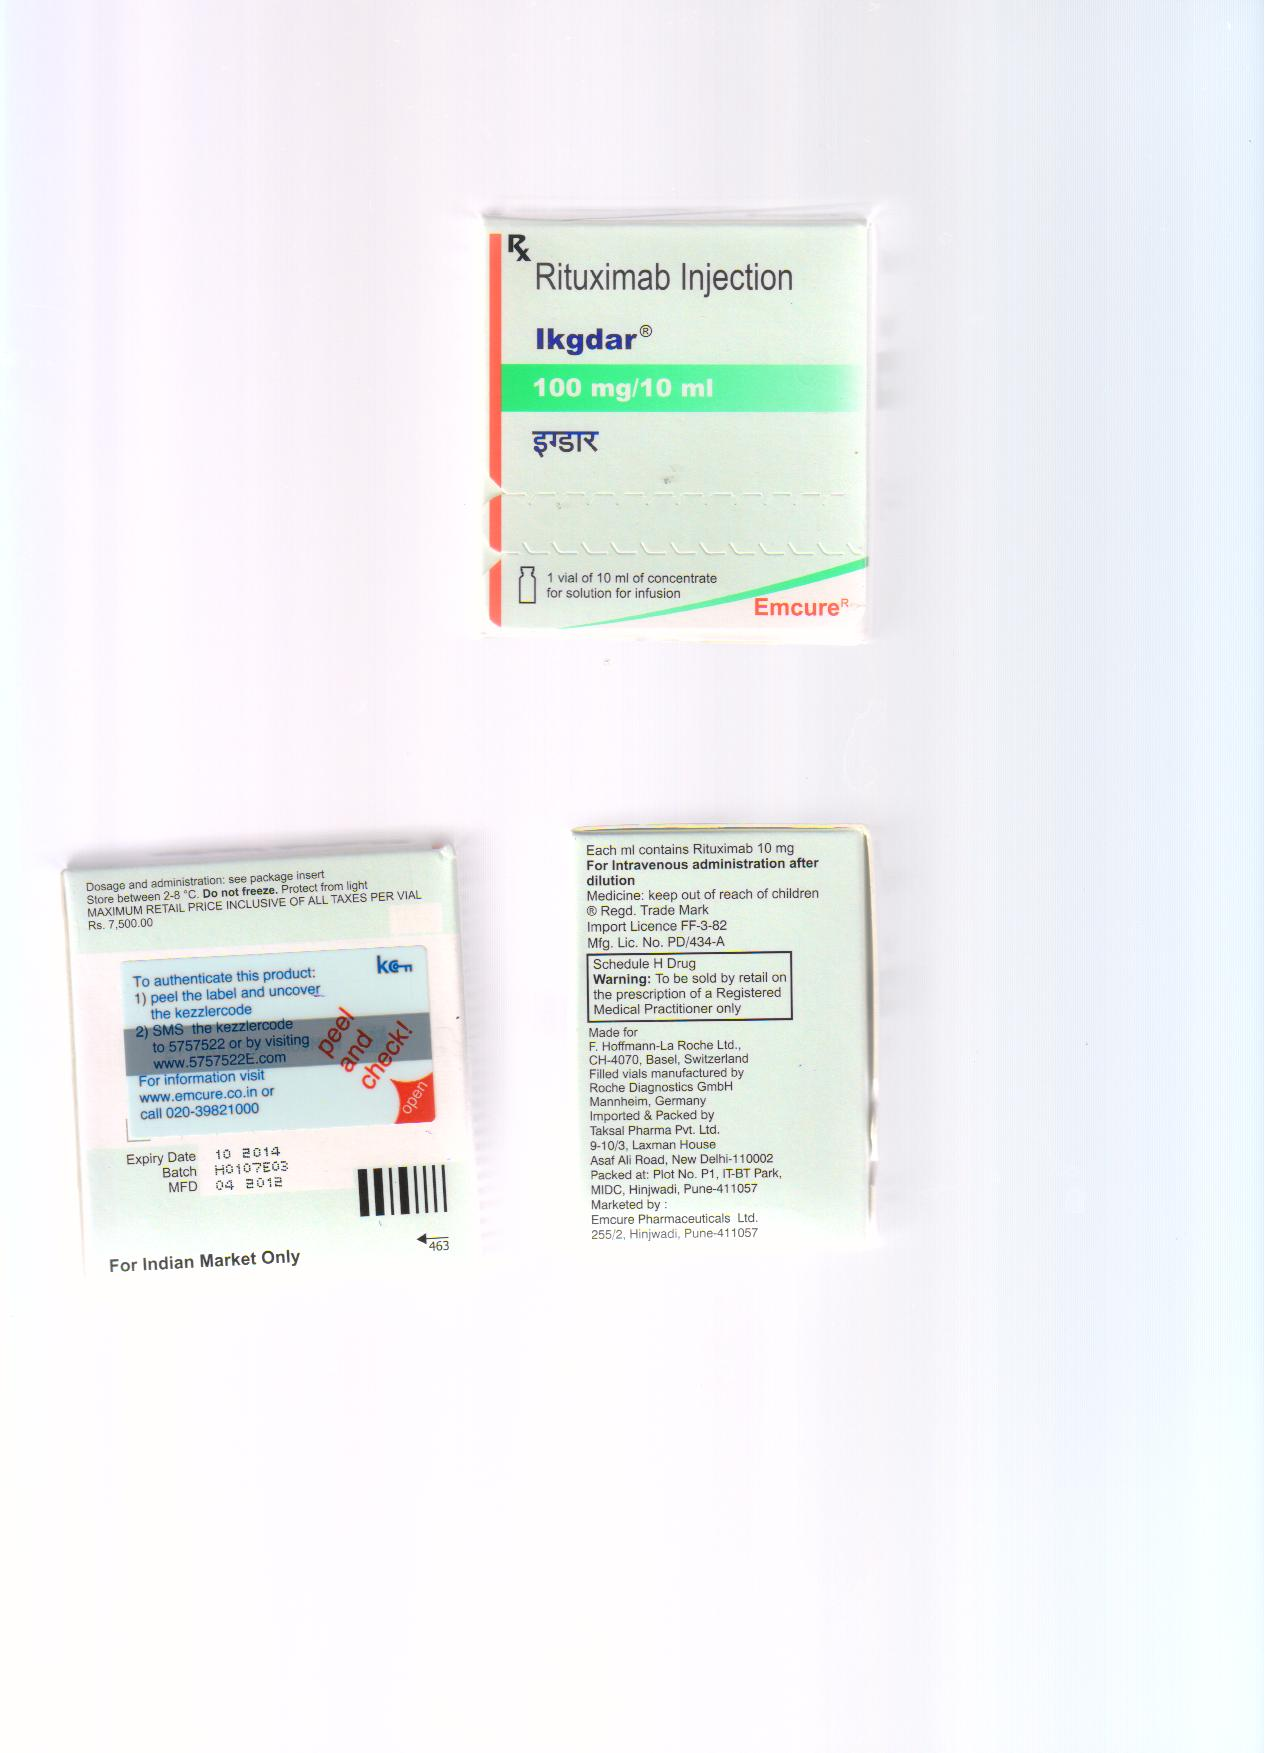 Nephro (Kidney Disease Related) Products Oncology Medicines, Anti Cancer Medicines, Cancer